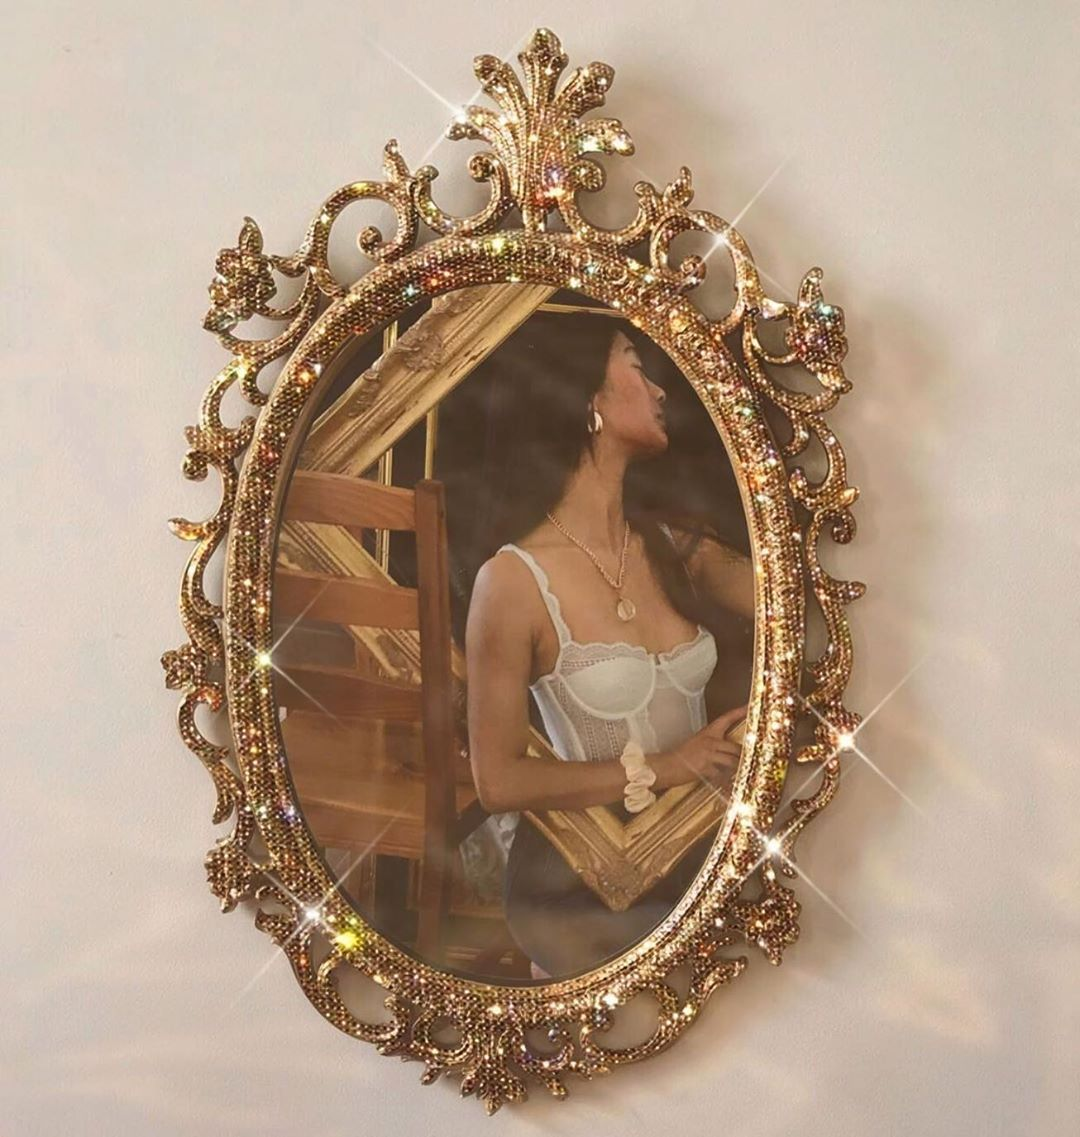 Less Perfection More Authenticity Mirrorselfie Vintage Sparkles Glitterlover Glitterart Fashion Victoriam Gold Aesthetic Classy Aesthetic Aesthetic Vintage